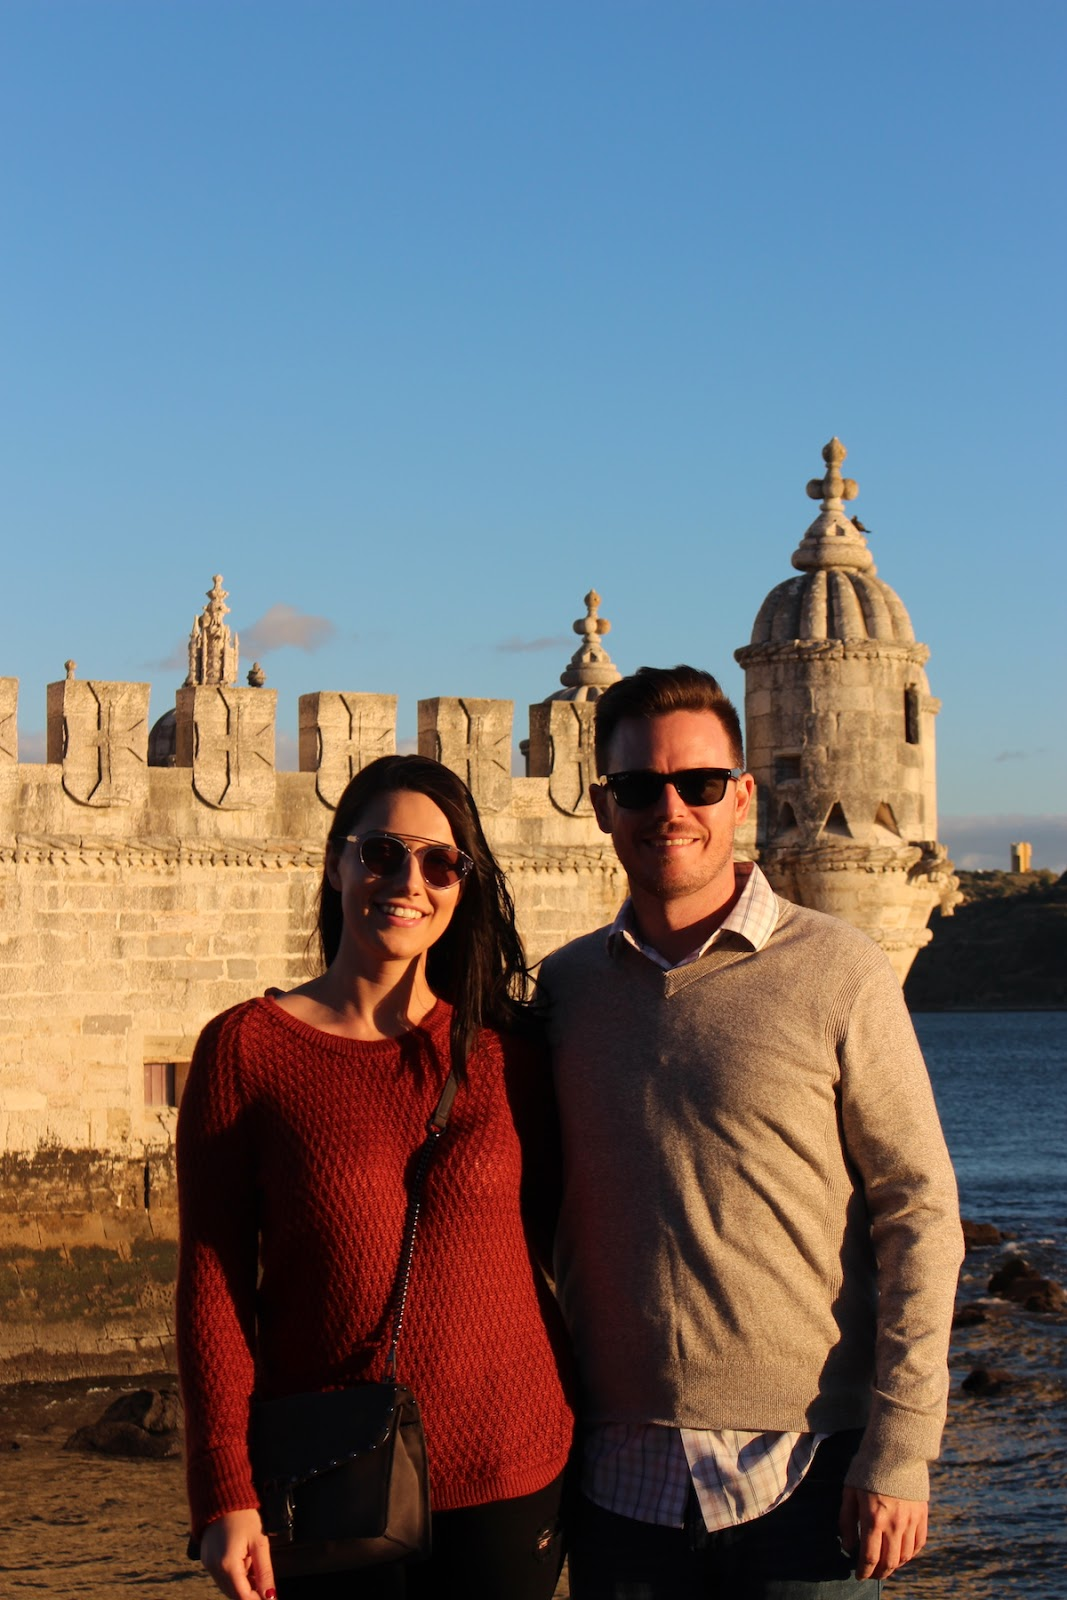 This is a photo of my boyfriend and I, in front of the Belem Tower, in Lisbon Portugal.